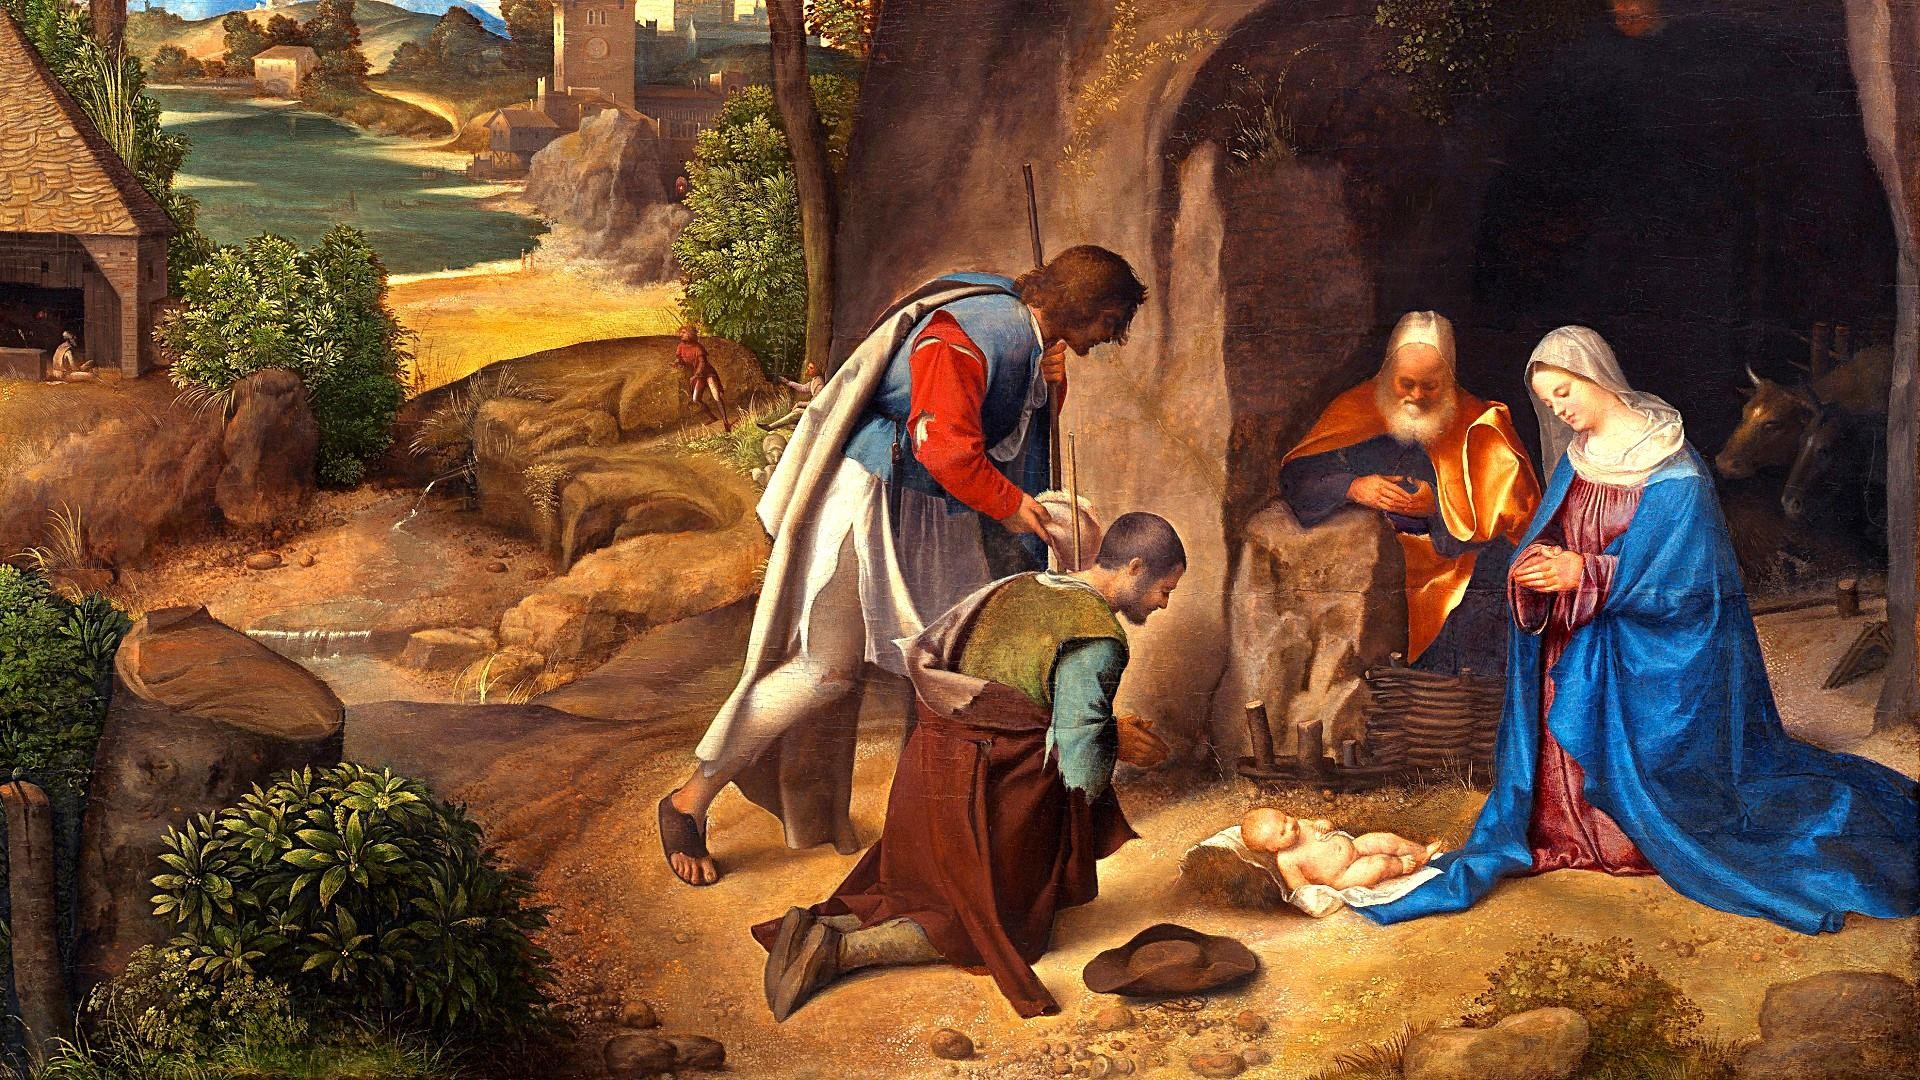 Res: 1920x1080, Giorgione Adoration Of The Shepherds Wallpaper | Wallpaper Studio 10 | Tens  of thousands HD and UltraHD wallpapers for Android, Windows and Xbox